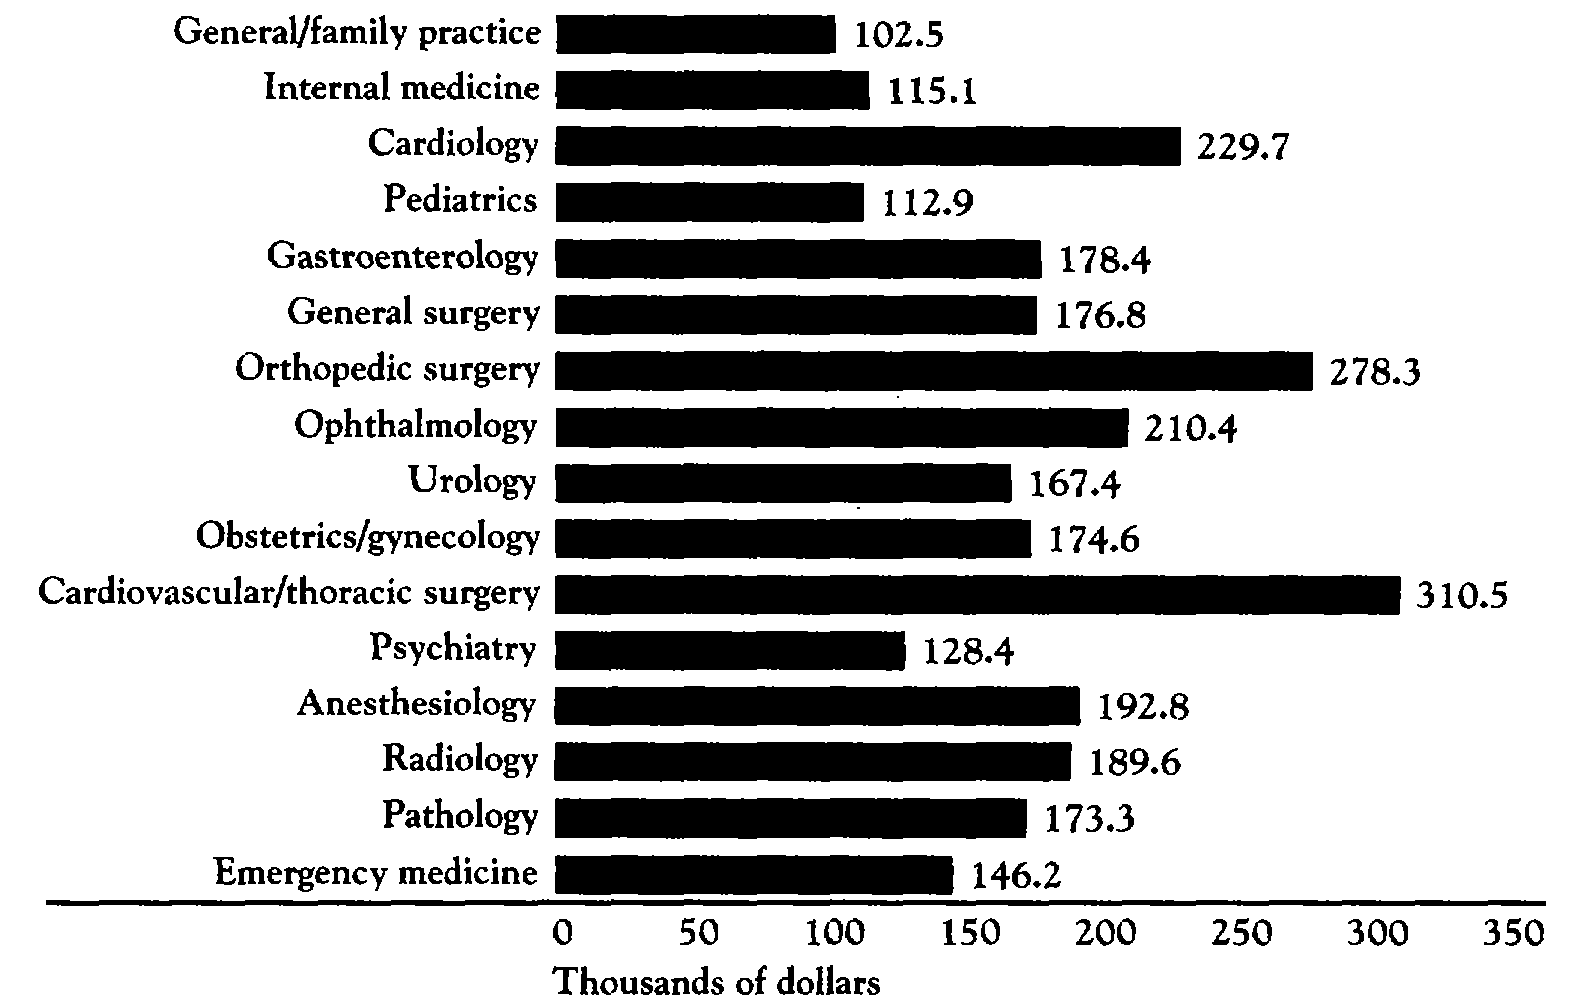 md salary analysis with graphs and figures | physician salary, Sphenoid